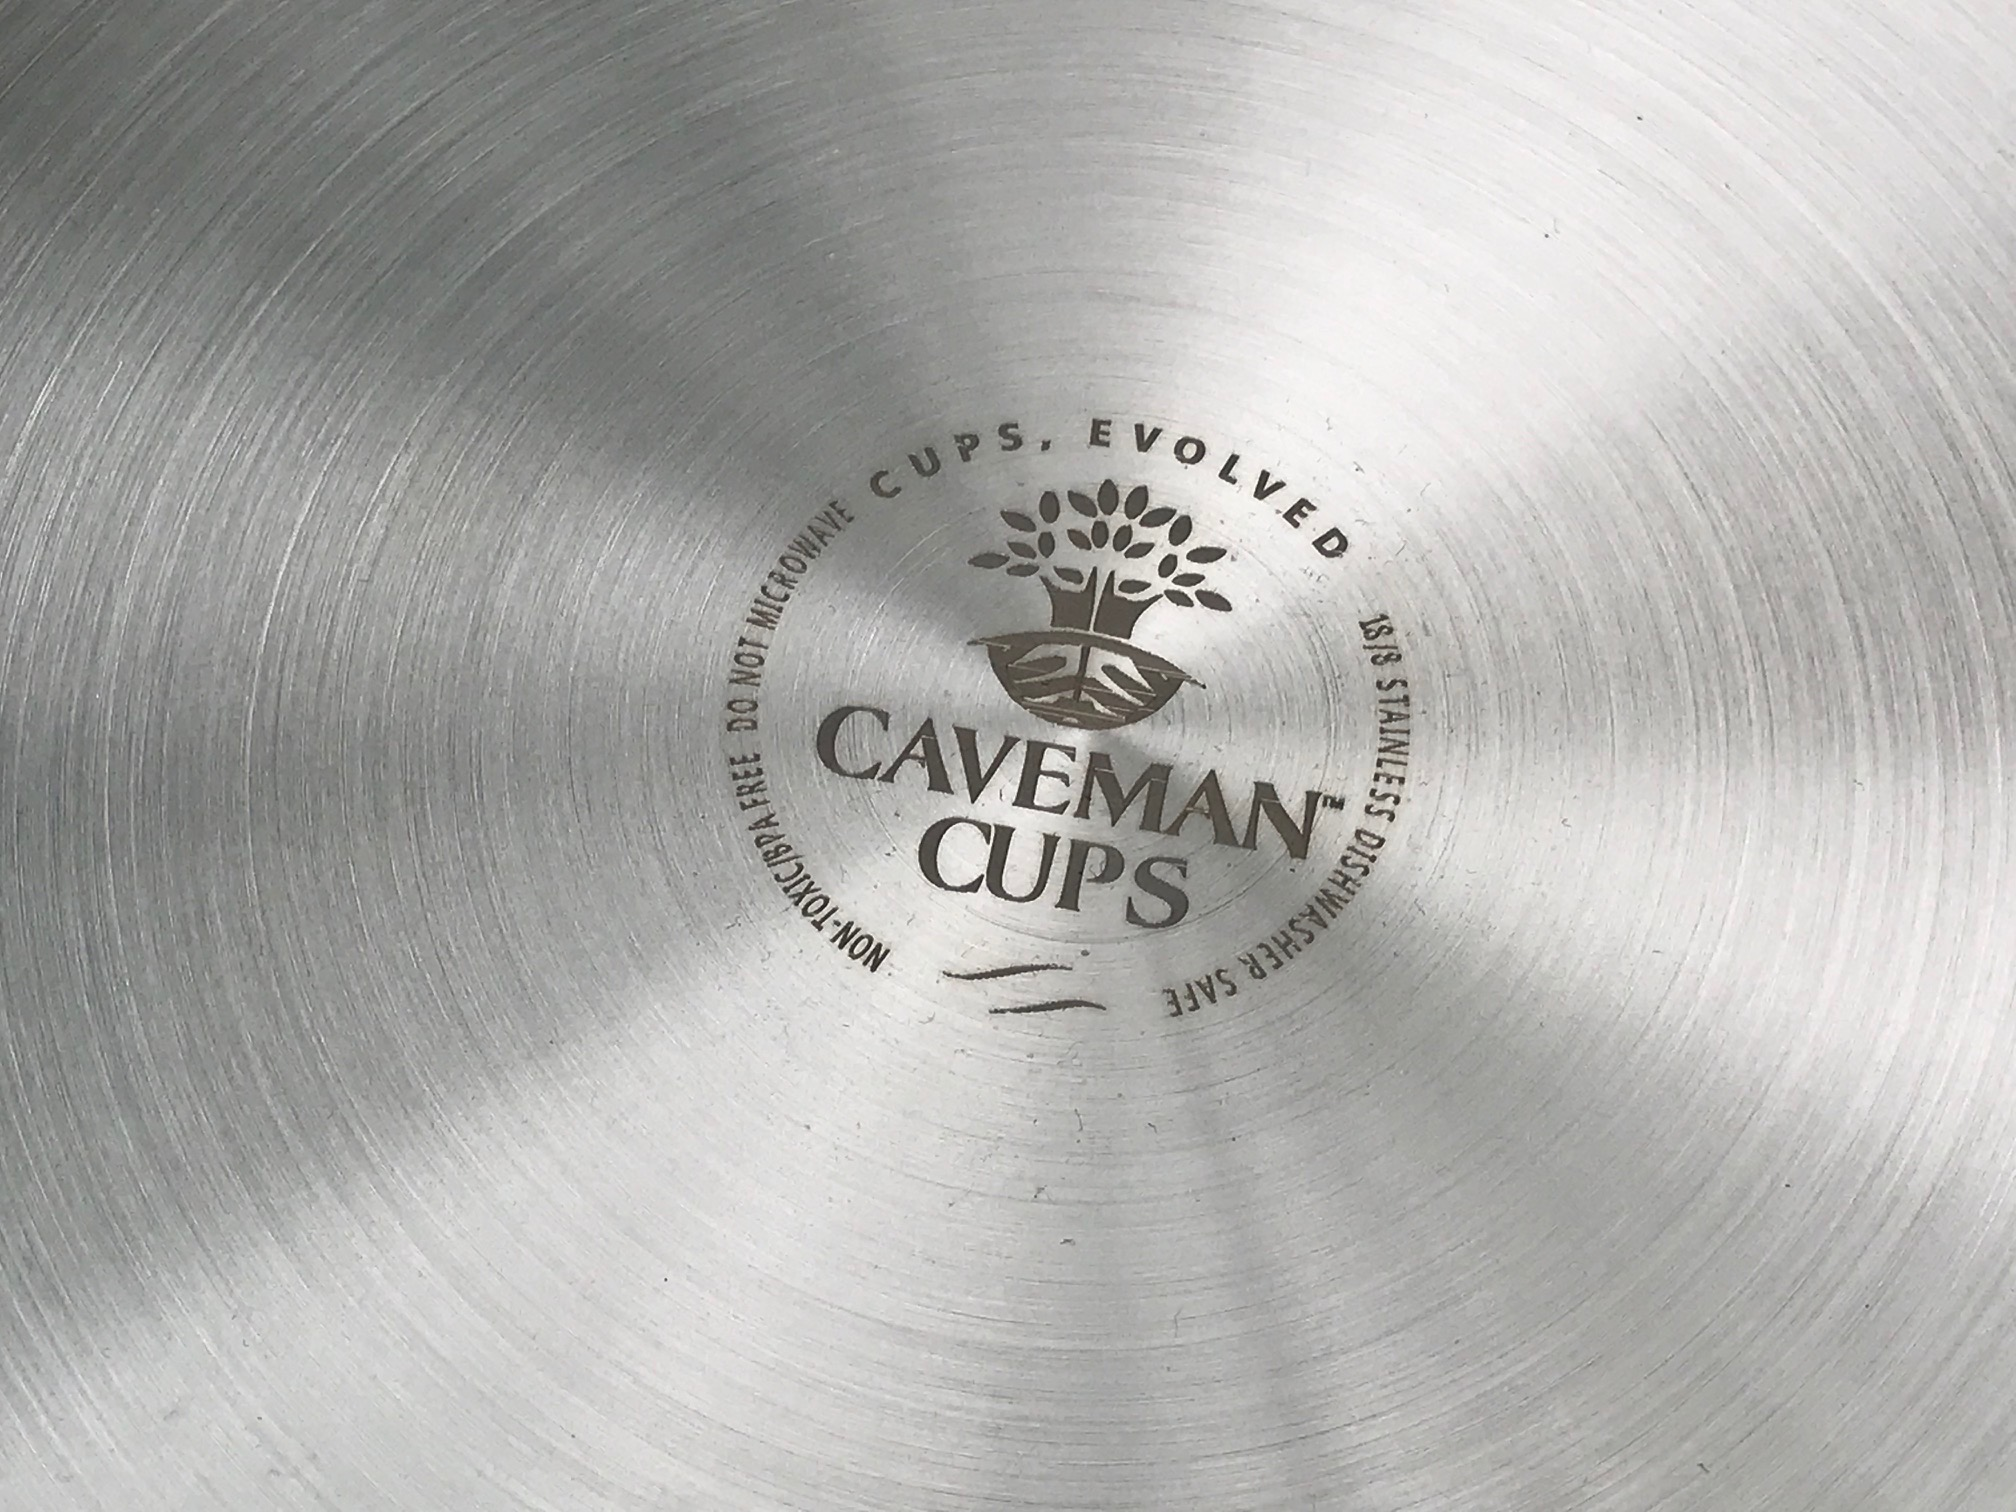 "Caveman Cups ""Extreme Use"" Stainless Steel Cub Plates: #Safe! Non-detect for Lead, Cadmium, Mercury & Arsenic."